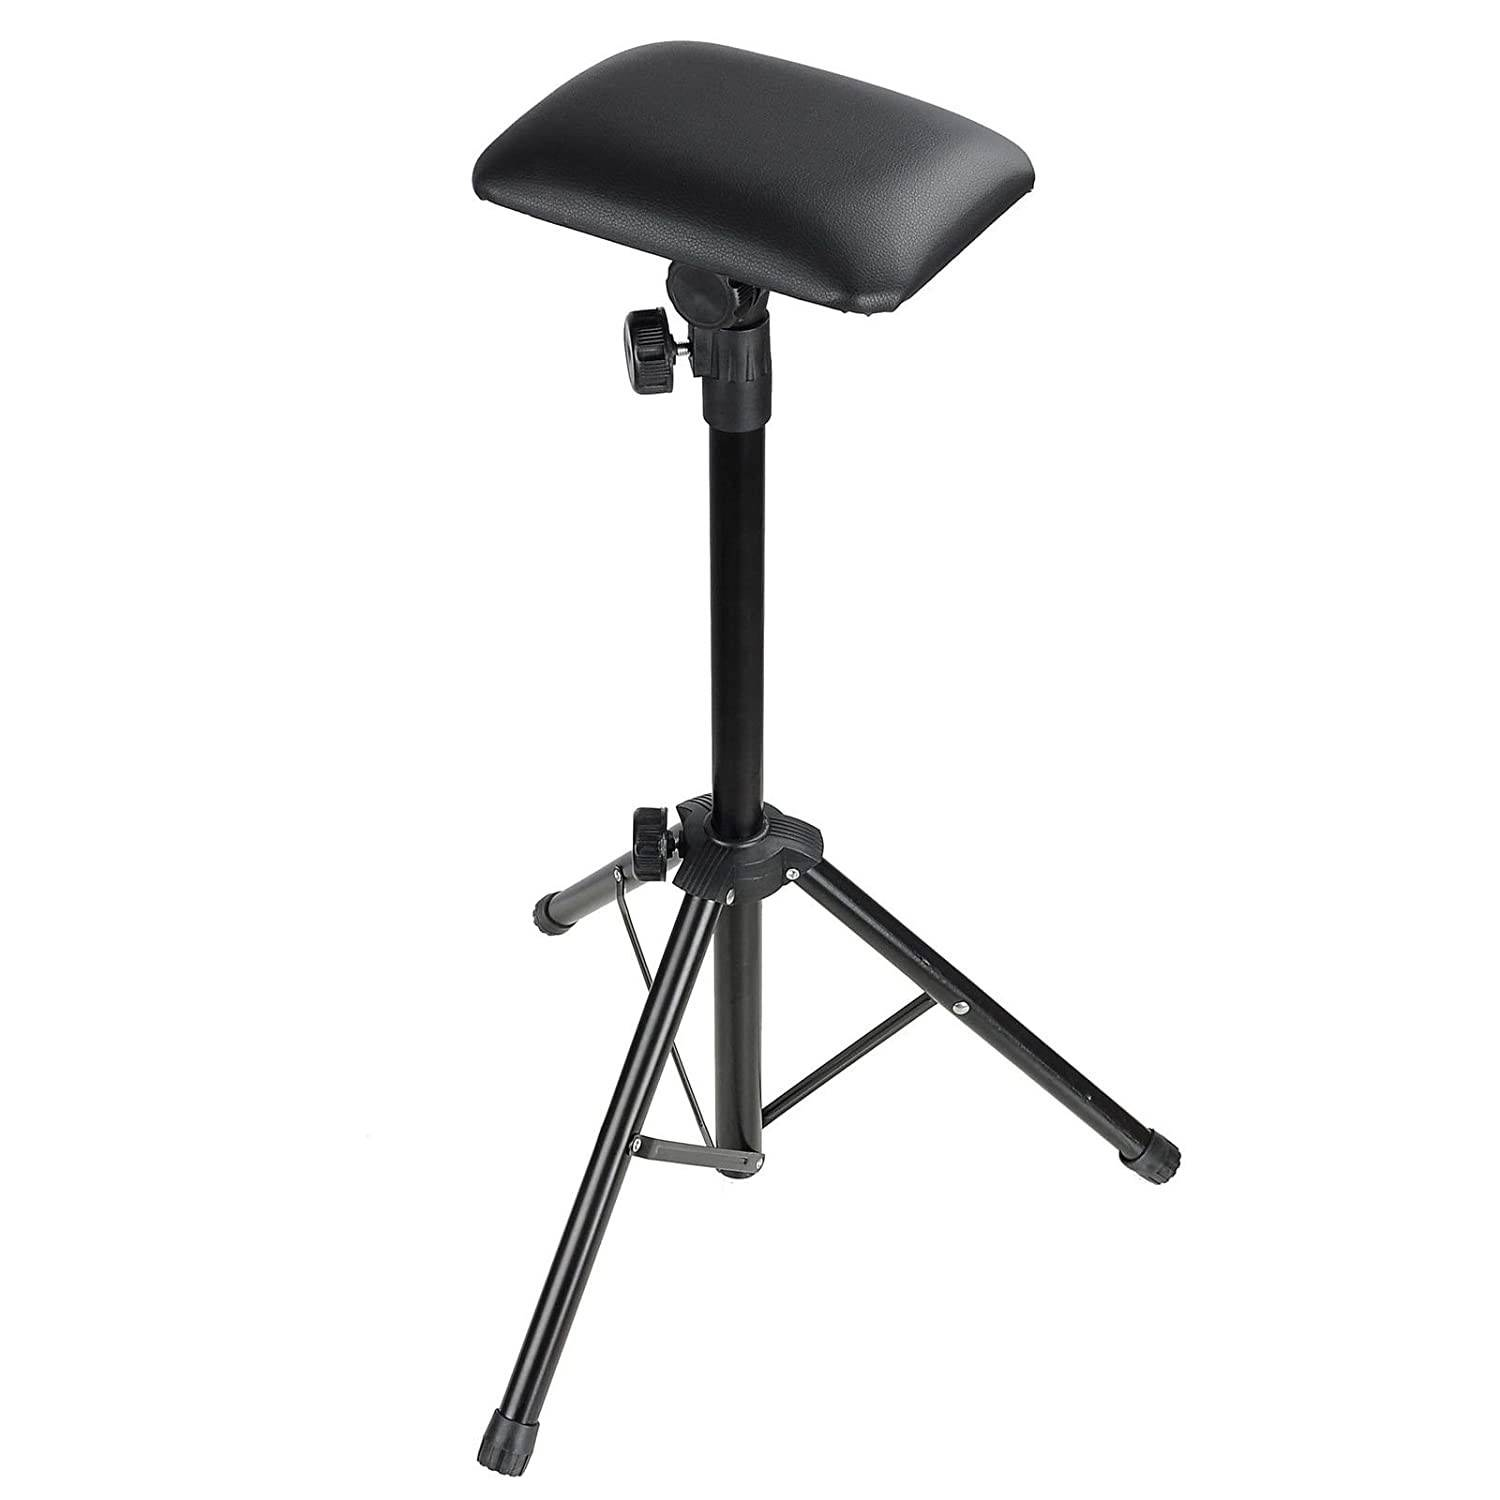 Tattoo Adjustable Height Black Arm Rest Stand Featured Image